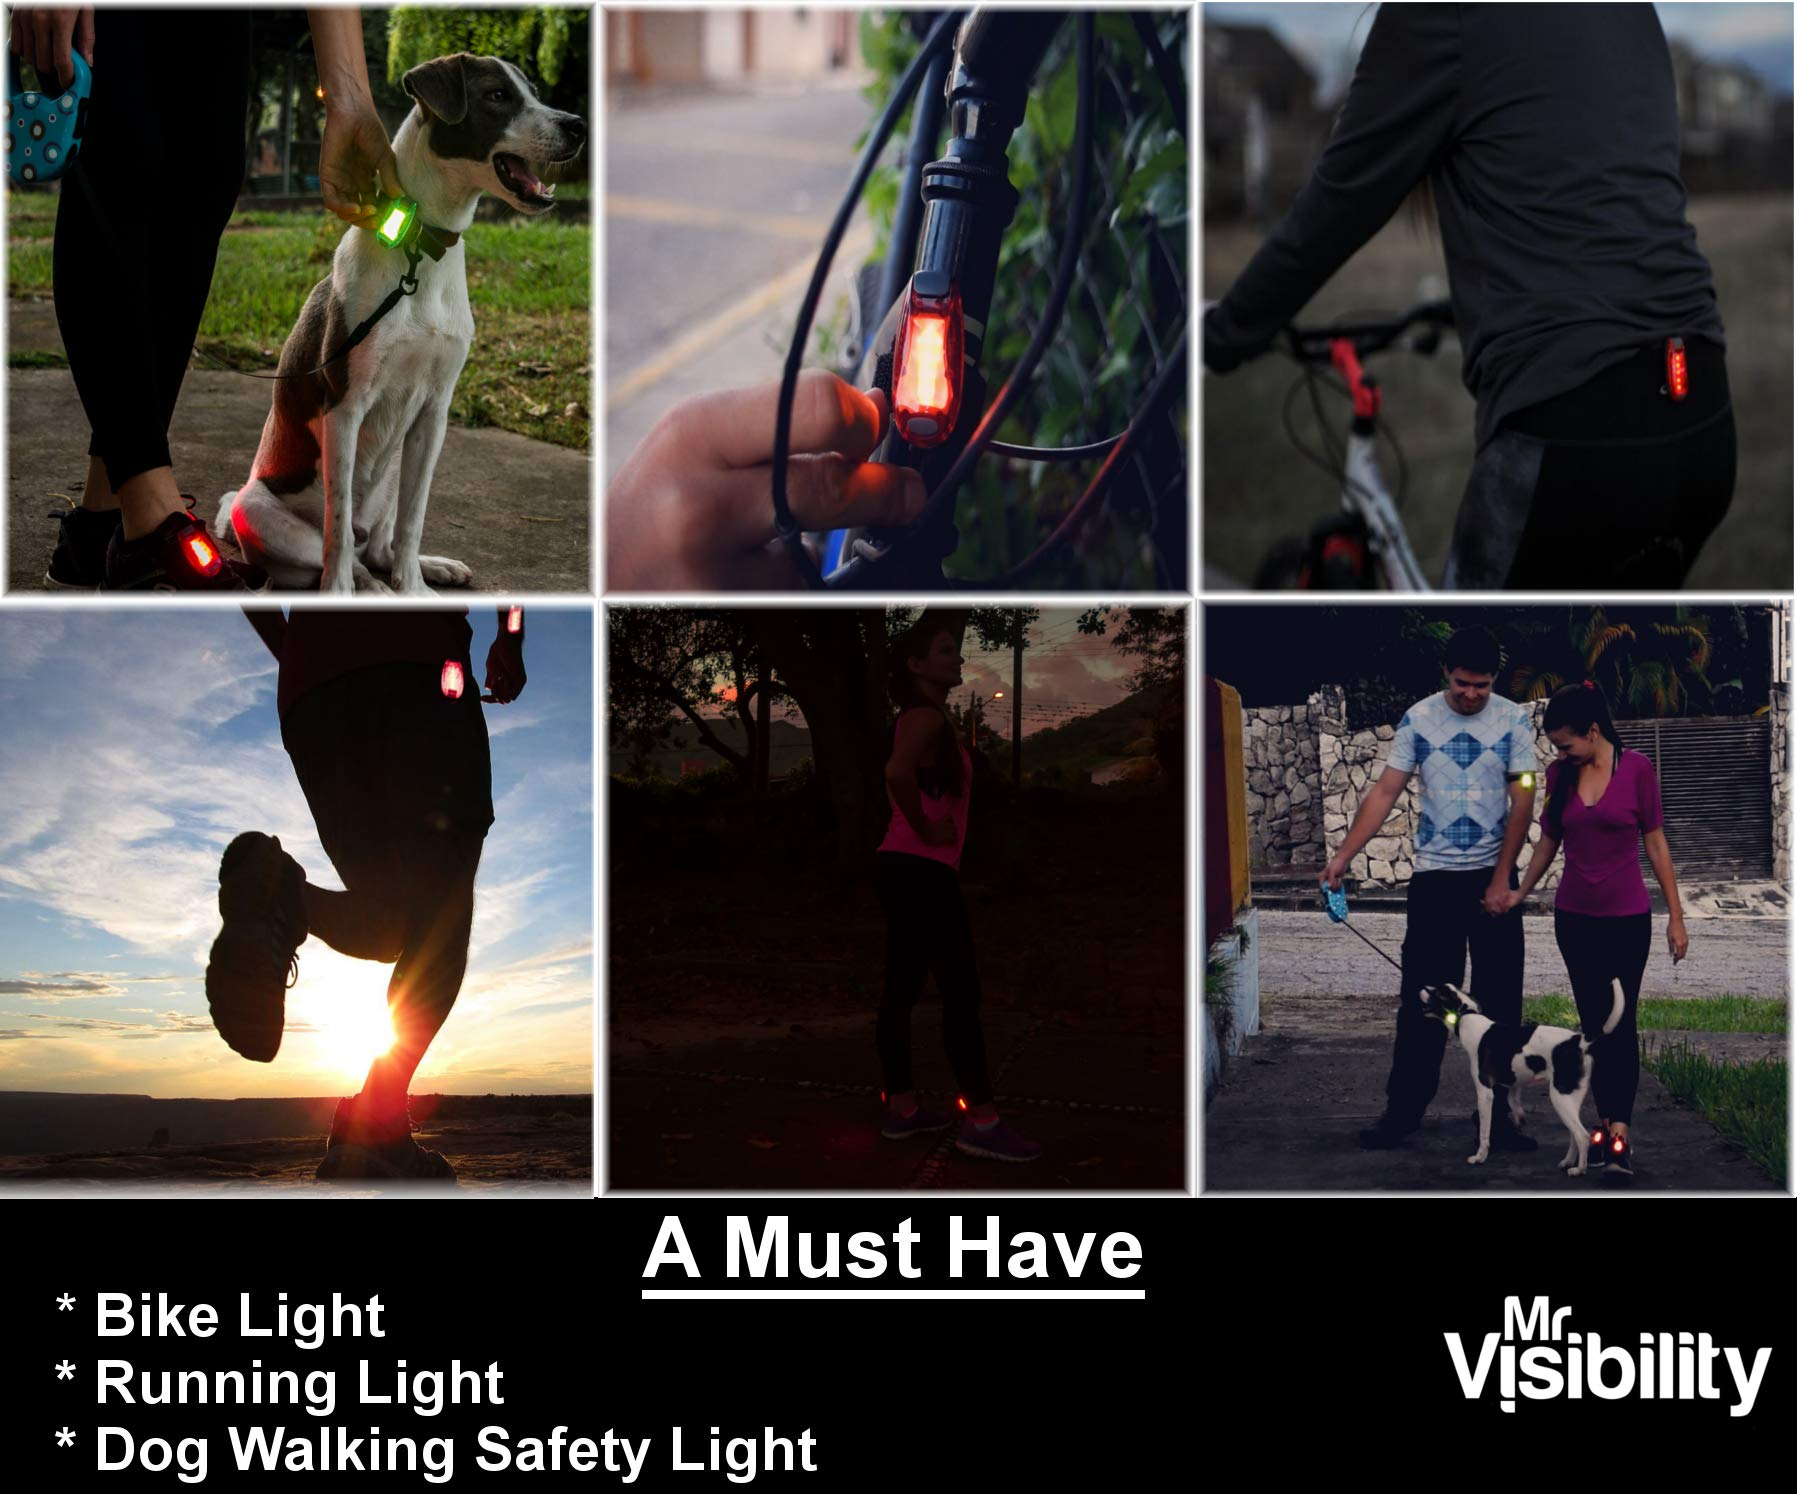 LED Safety Light (2 Pack) + Bonuses New Version | Clip On Strobe/Running Lights for Runners, Dogs, Bike, Walking | The Brighter High Visibility for Outdoor, Pet Collar, Helmet, Reflective Gear | Green